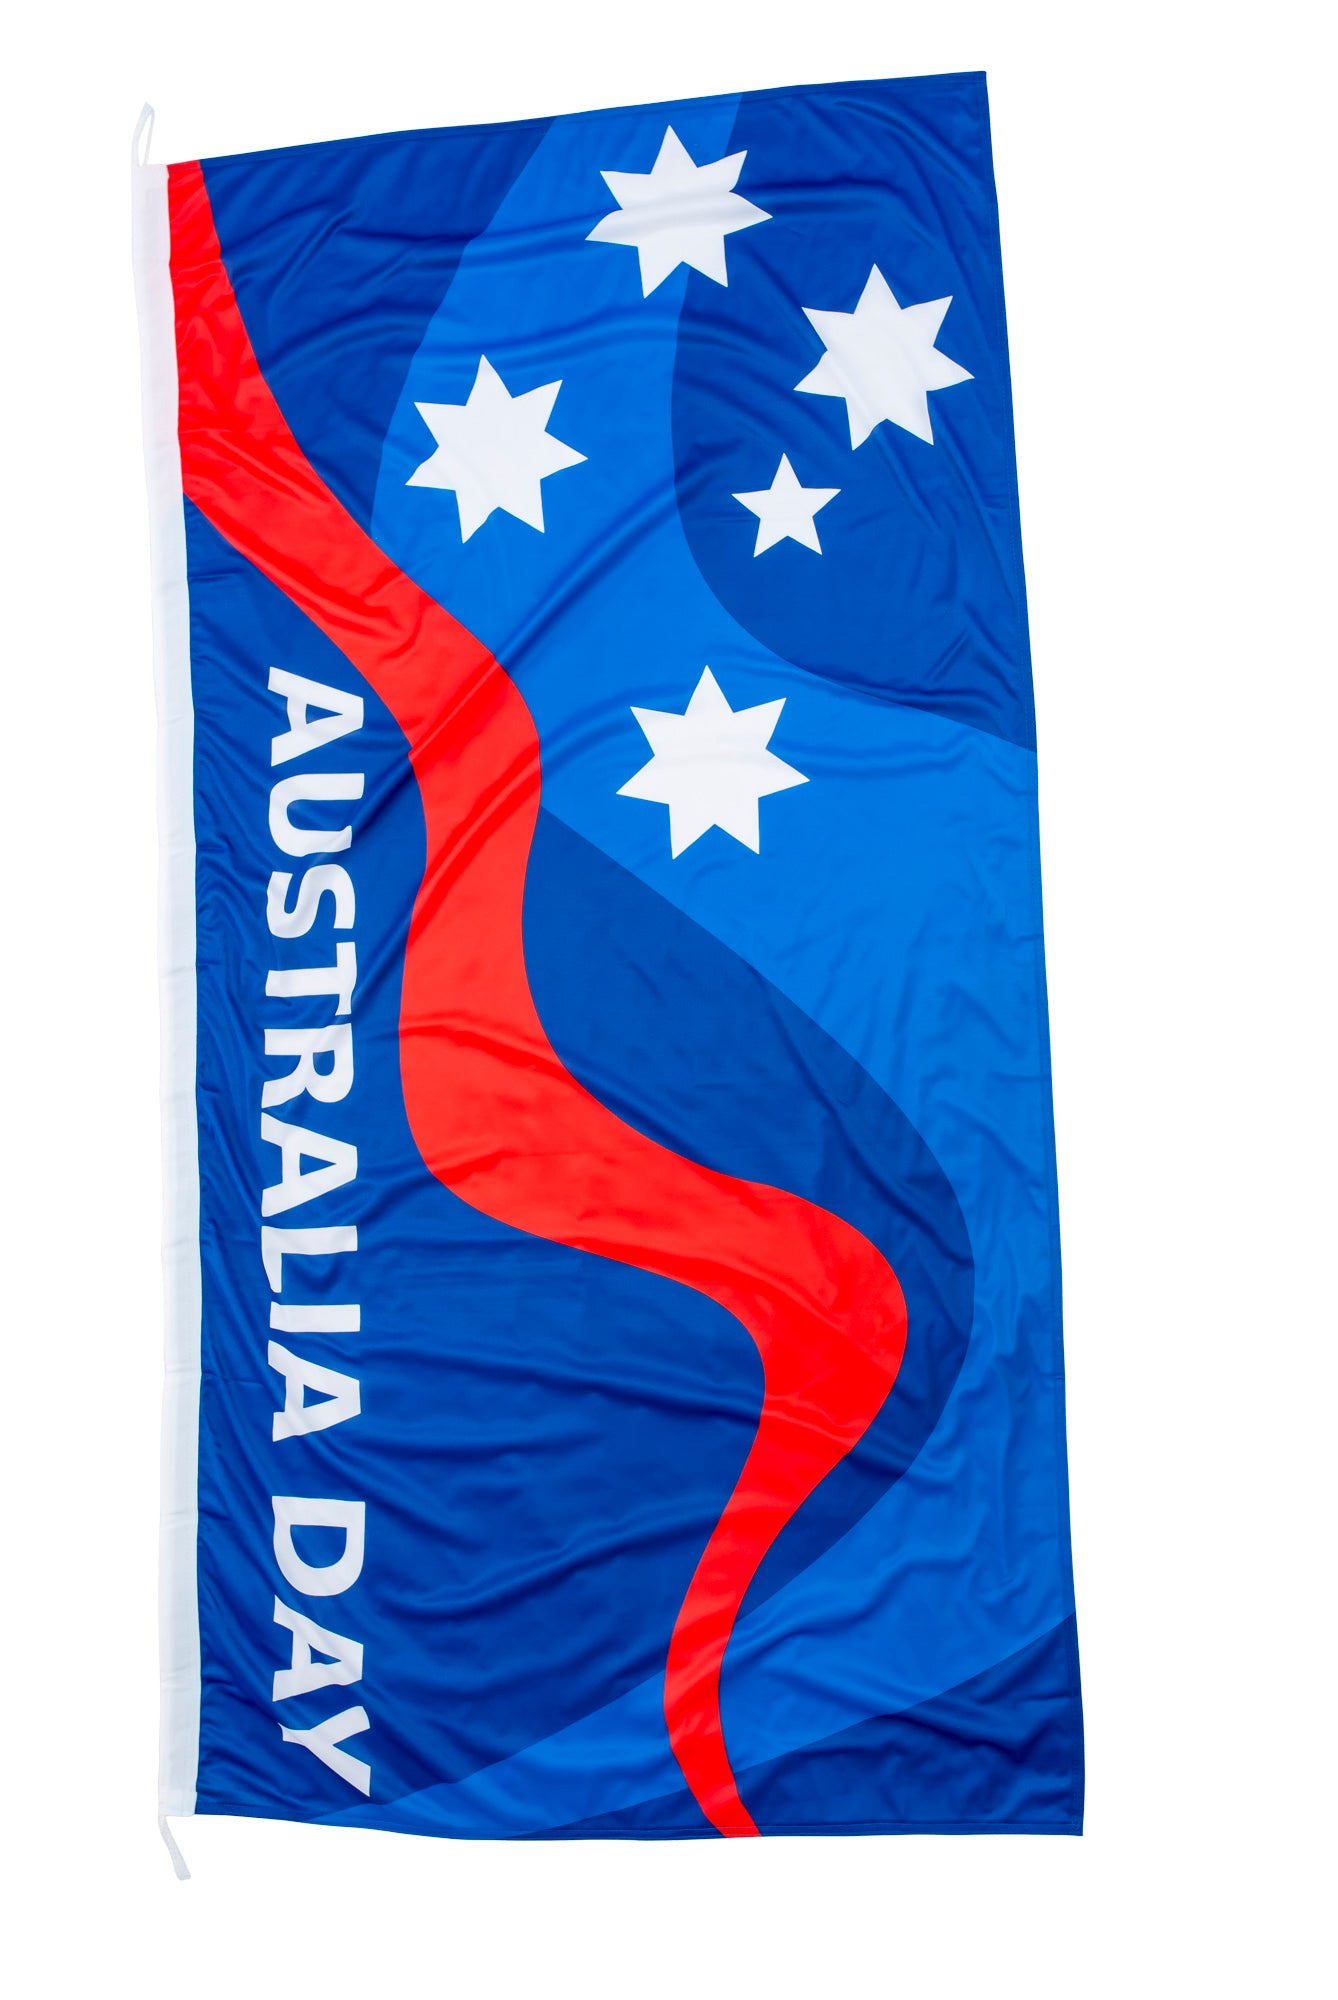 Australia Day Street Flags (old look)